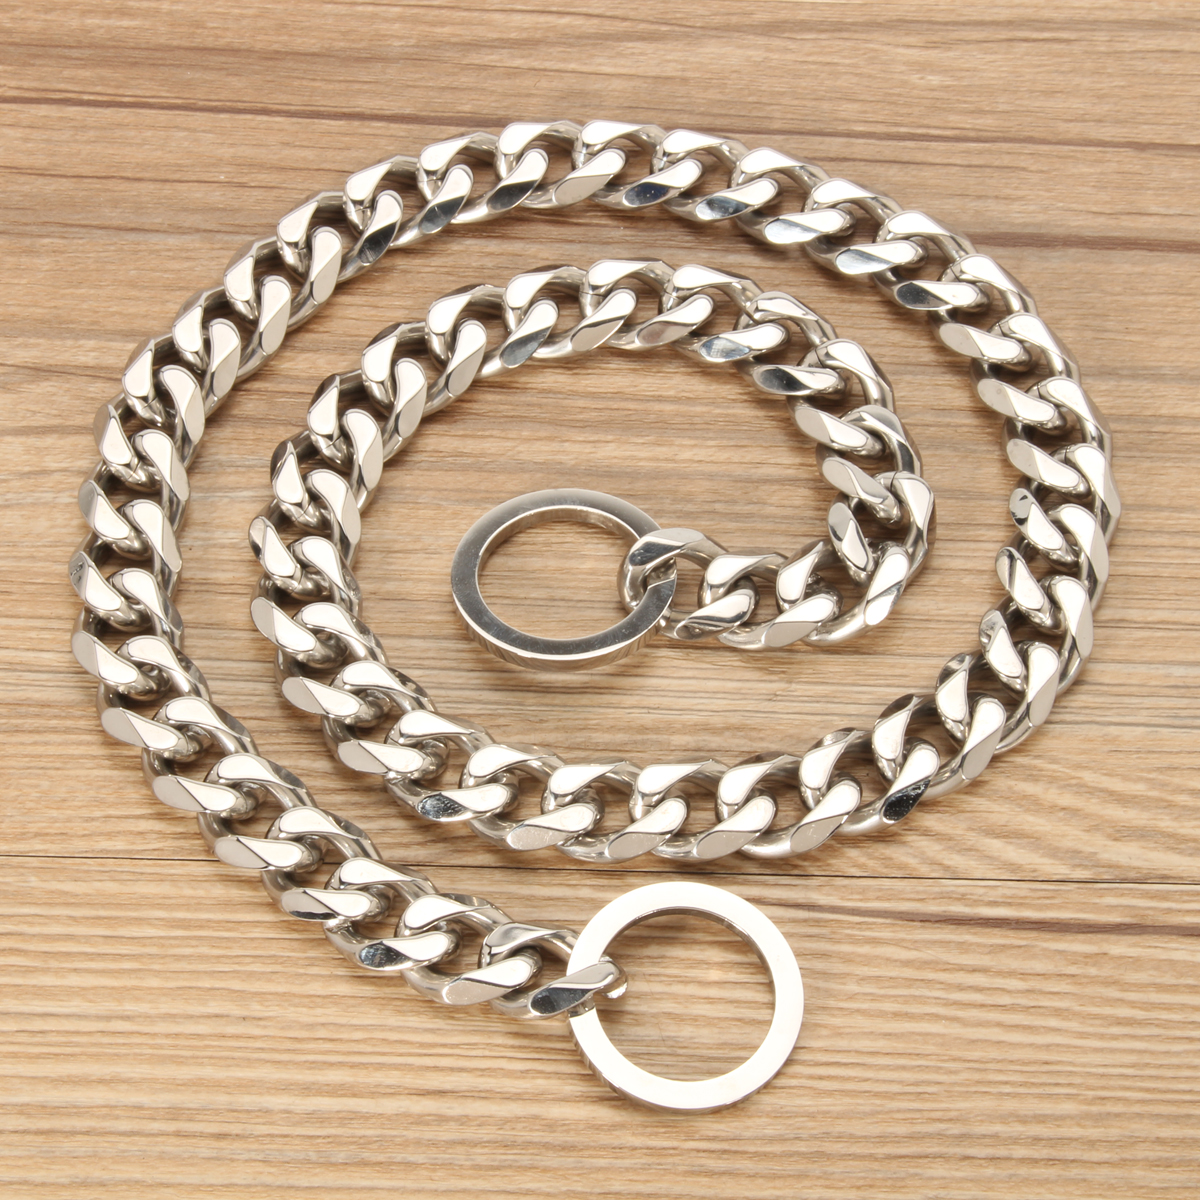 Silver Cuban Curb Link Stainless Steel Dog Chain Pet Training Collar Choker Dog Traction Rope